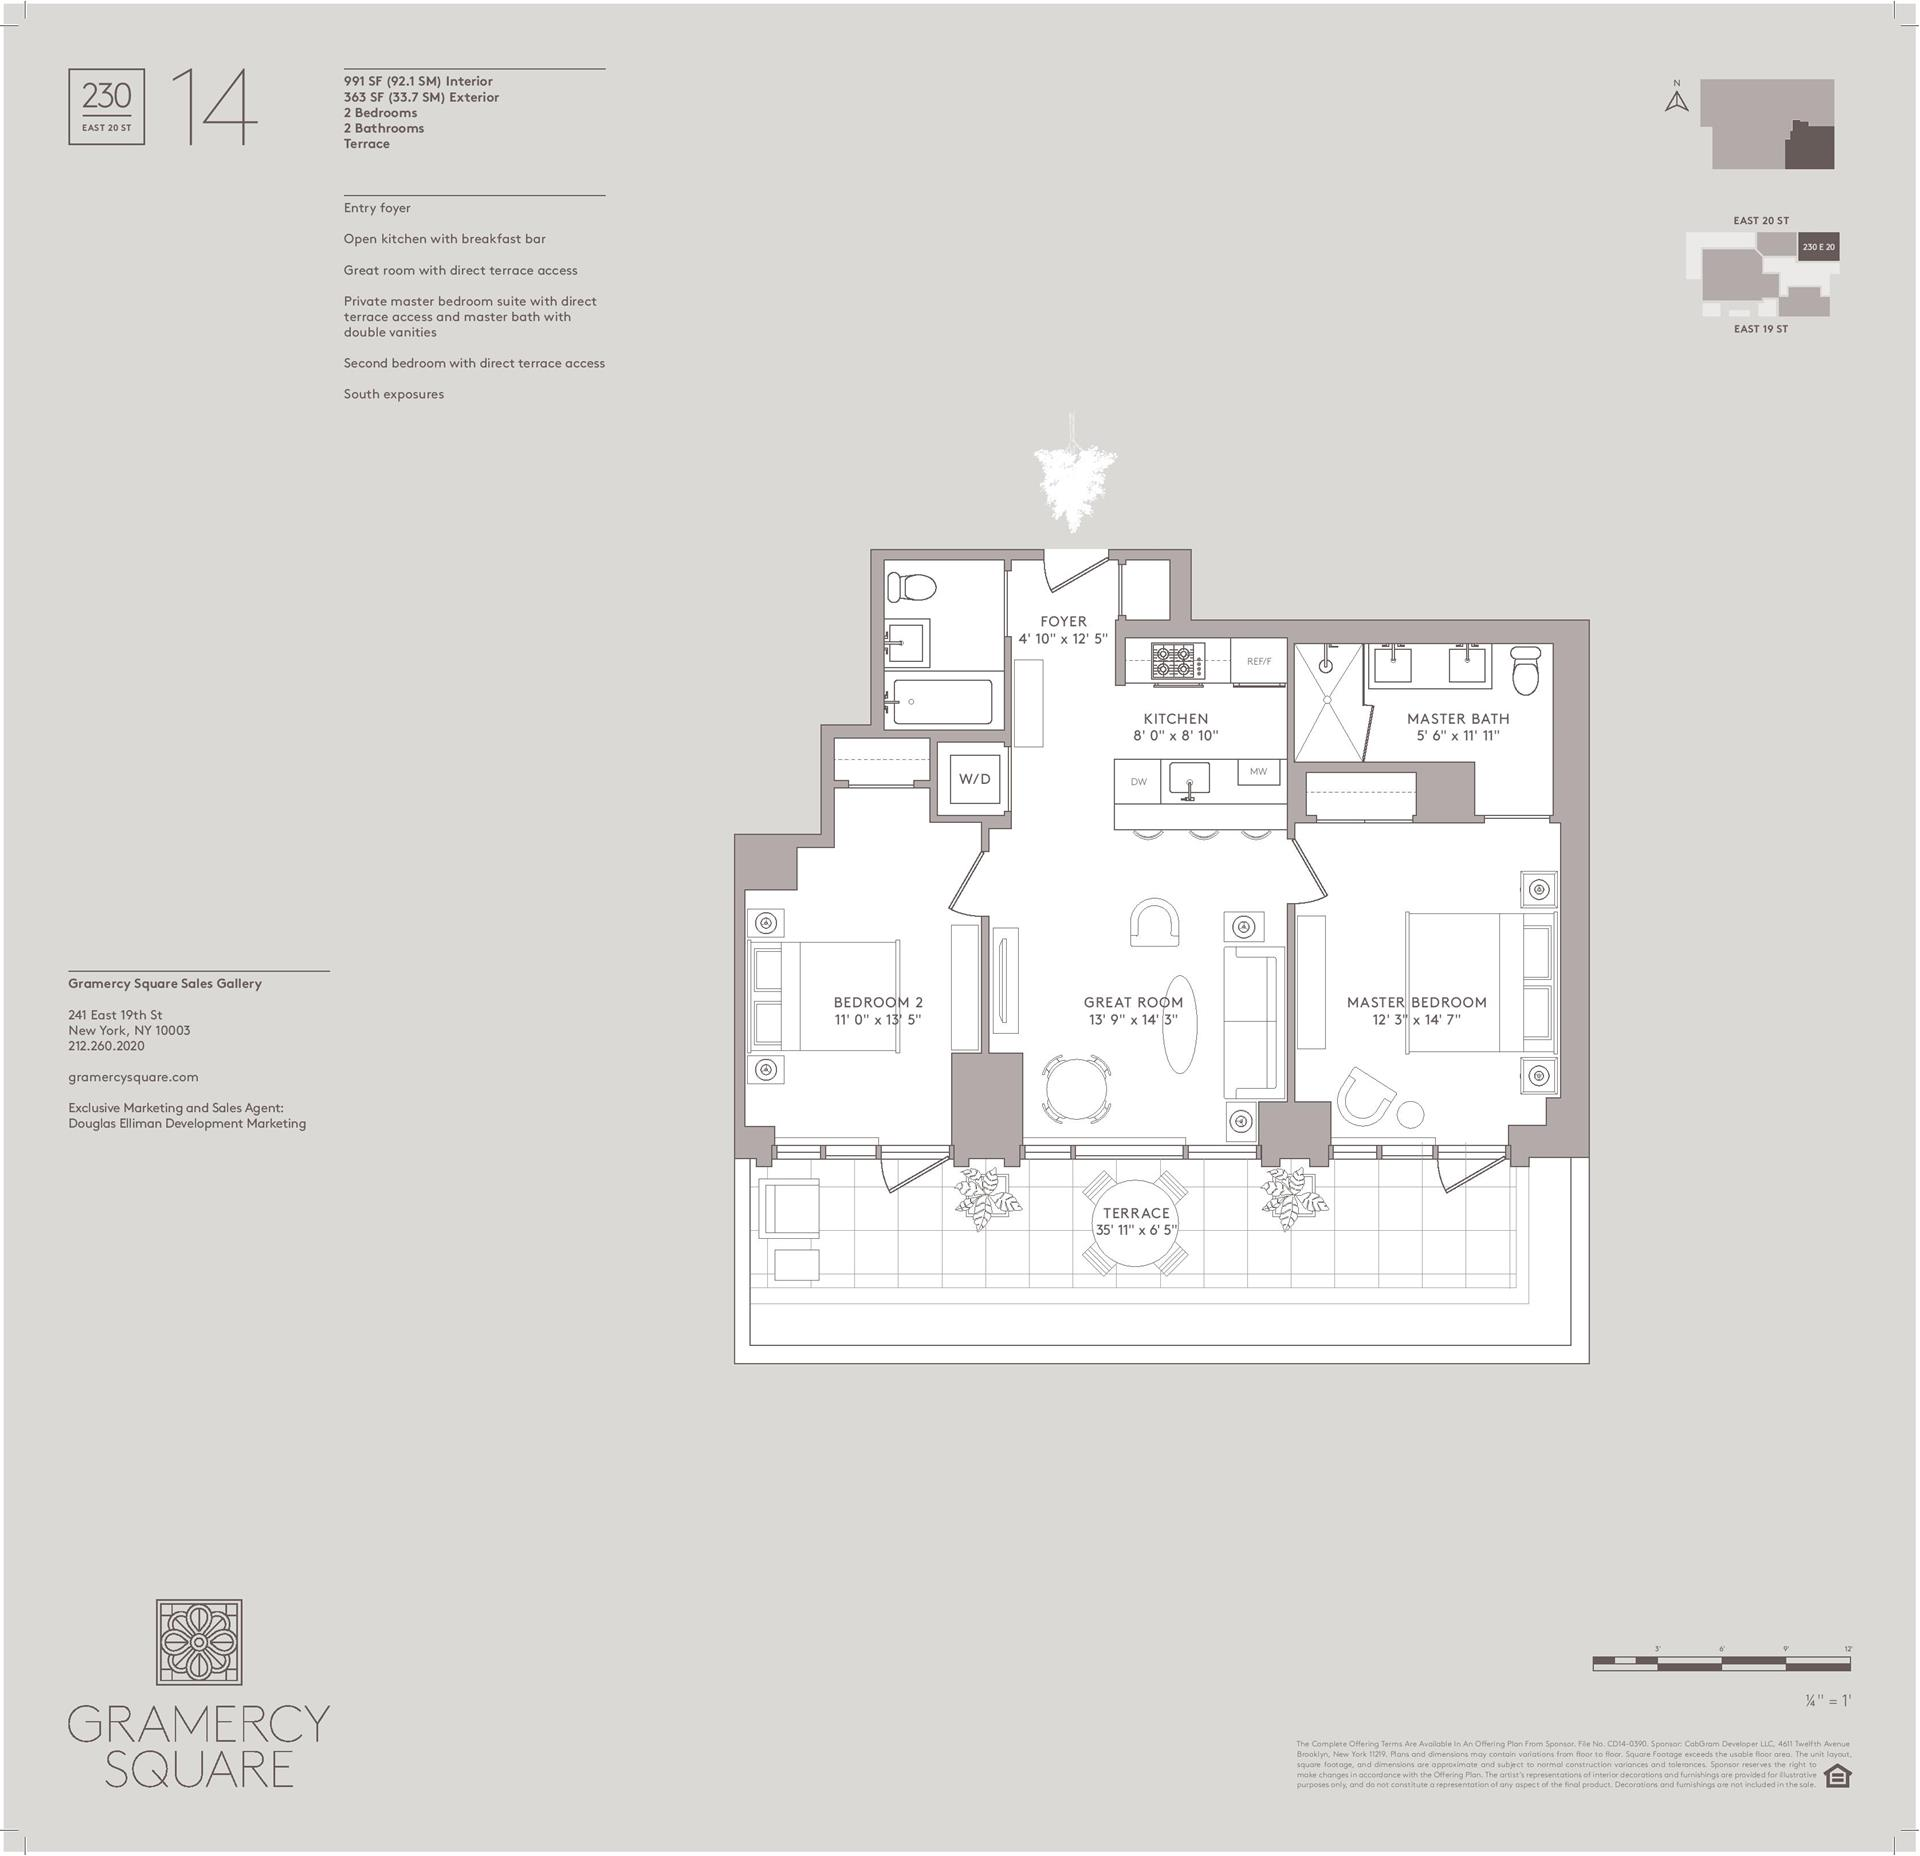 Floor plan of Gramercy Square, 230 East 20th St, 14 - Gramercy - Union Square, New York